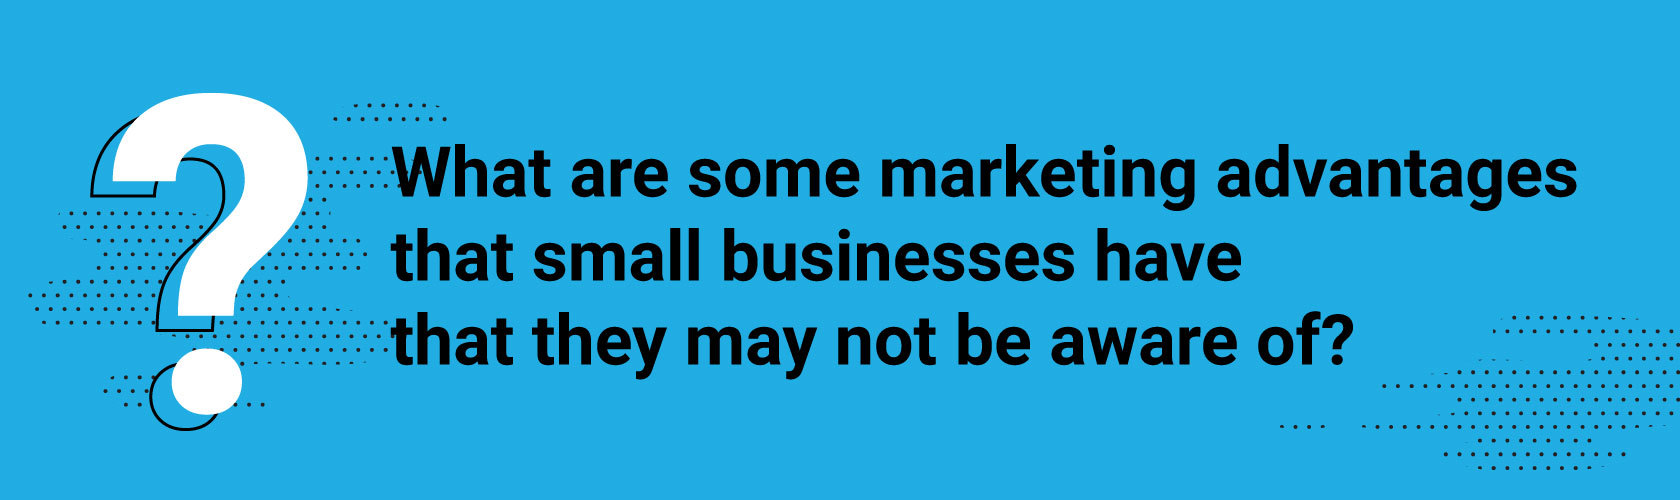 What are some marketing advantages that small businesses have that they may not be aware of?